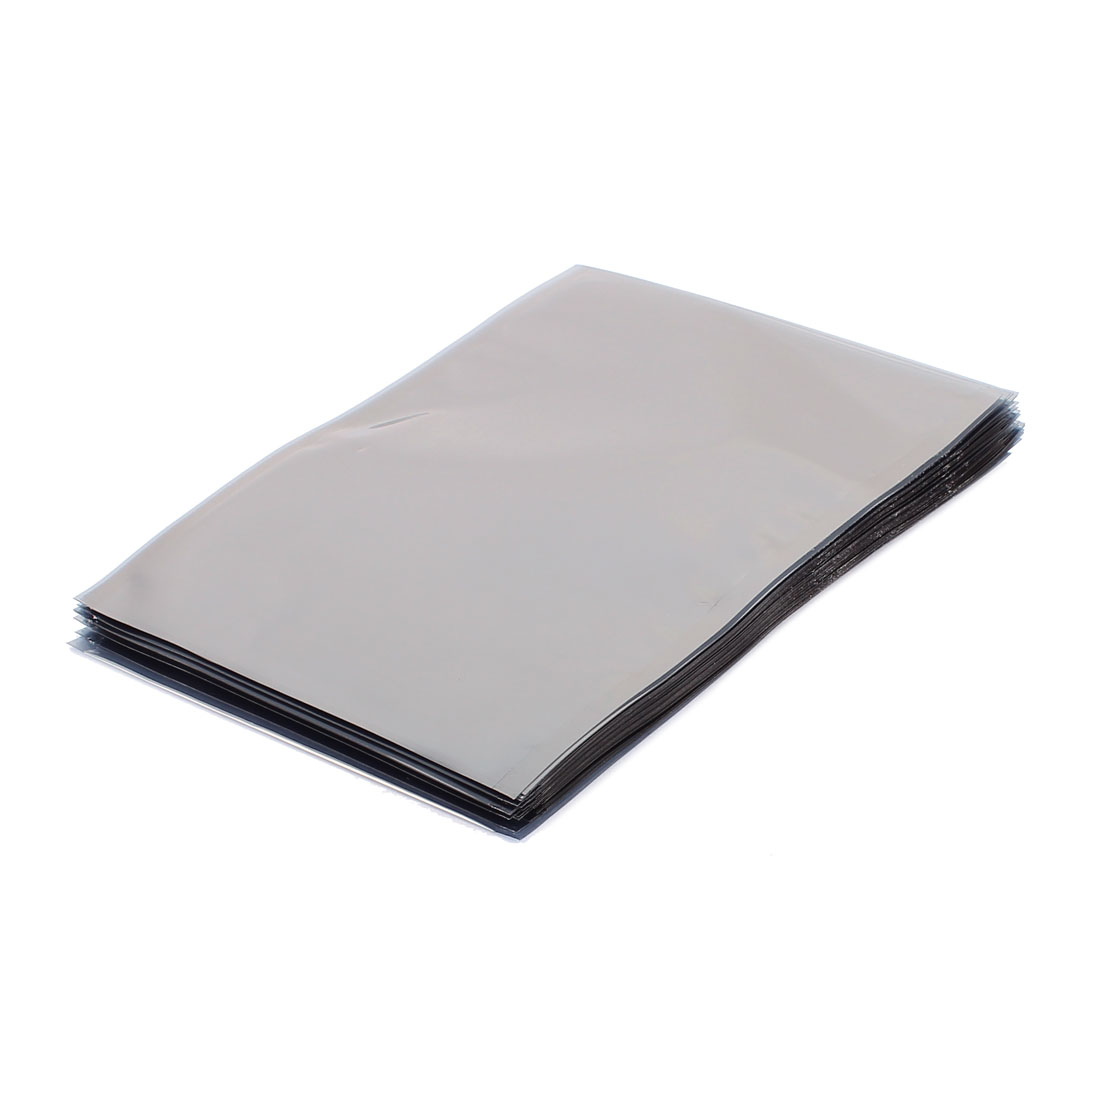 50 Pcs 110mm x 150mm Silver Tone Flat Open Top Anti Static Bag For Electronics